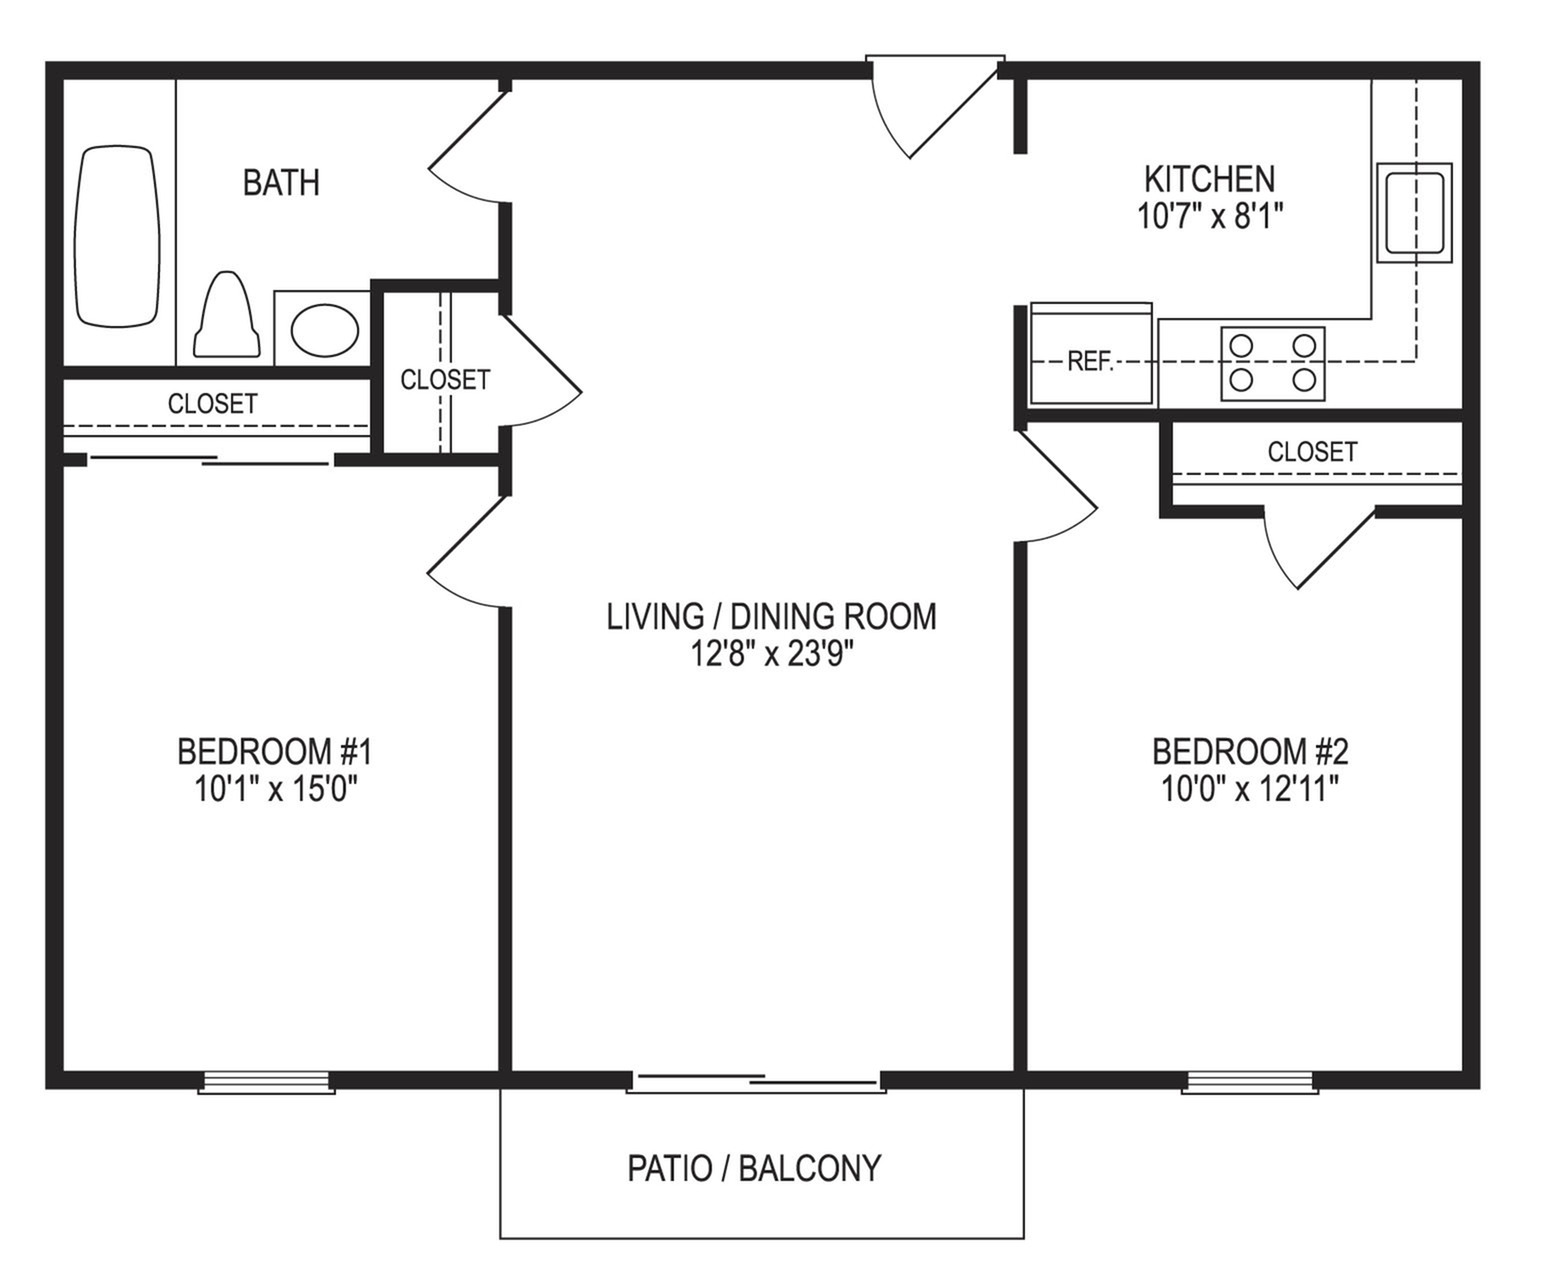 2 Bedroom / 1 Bath